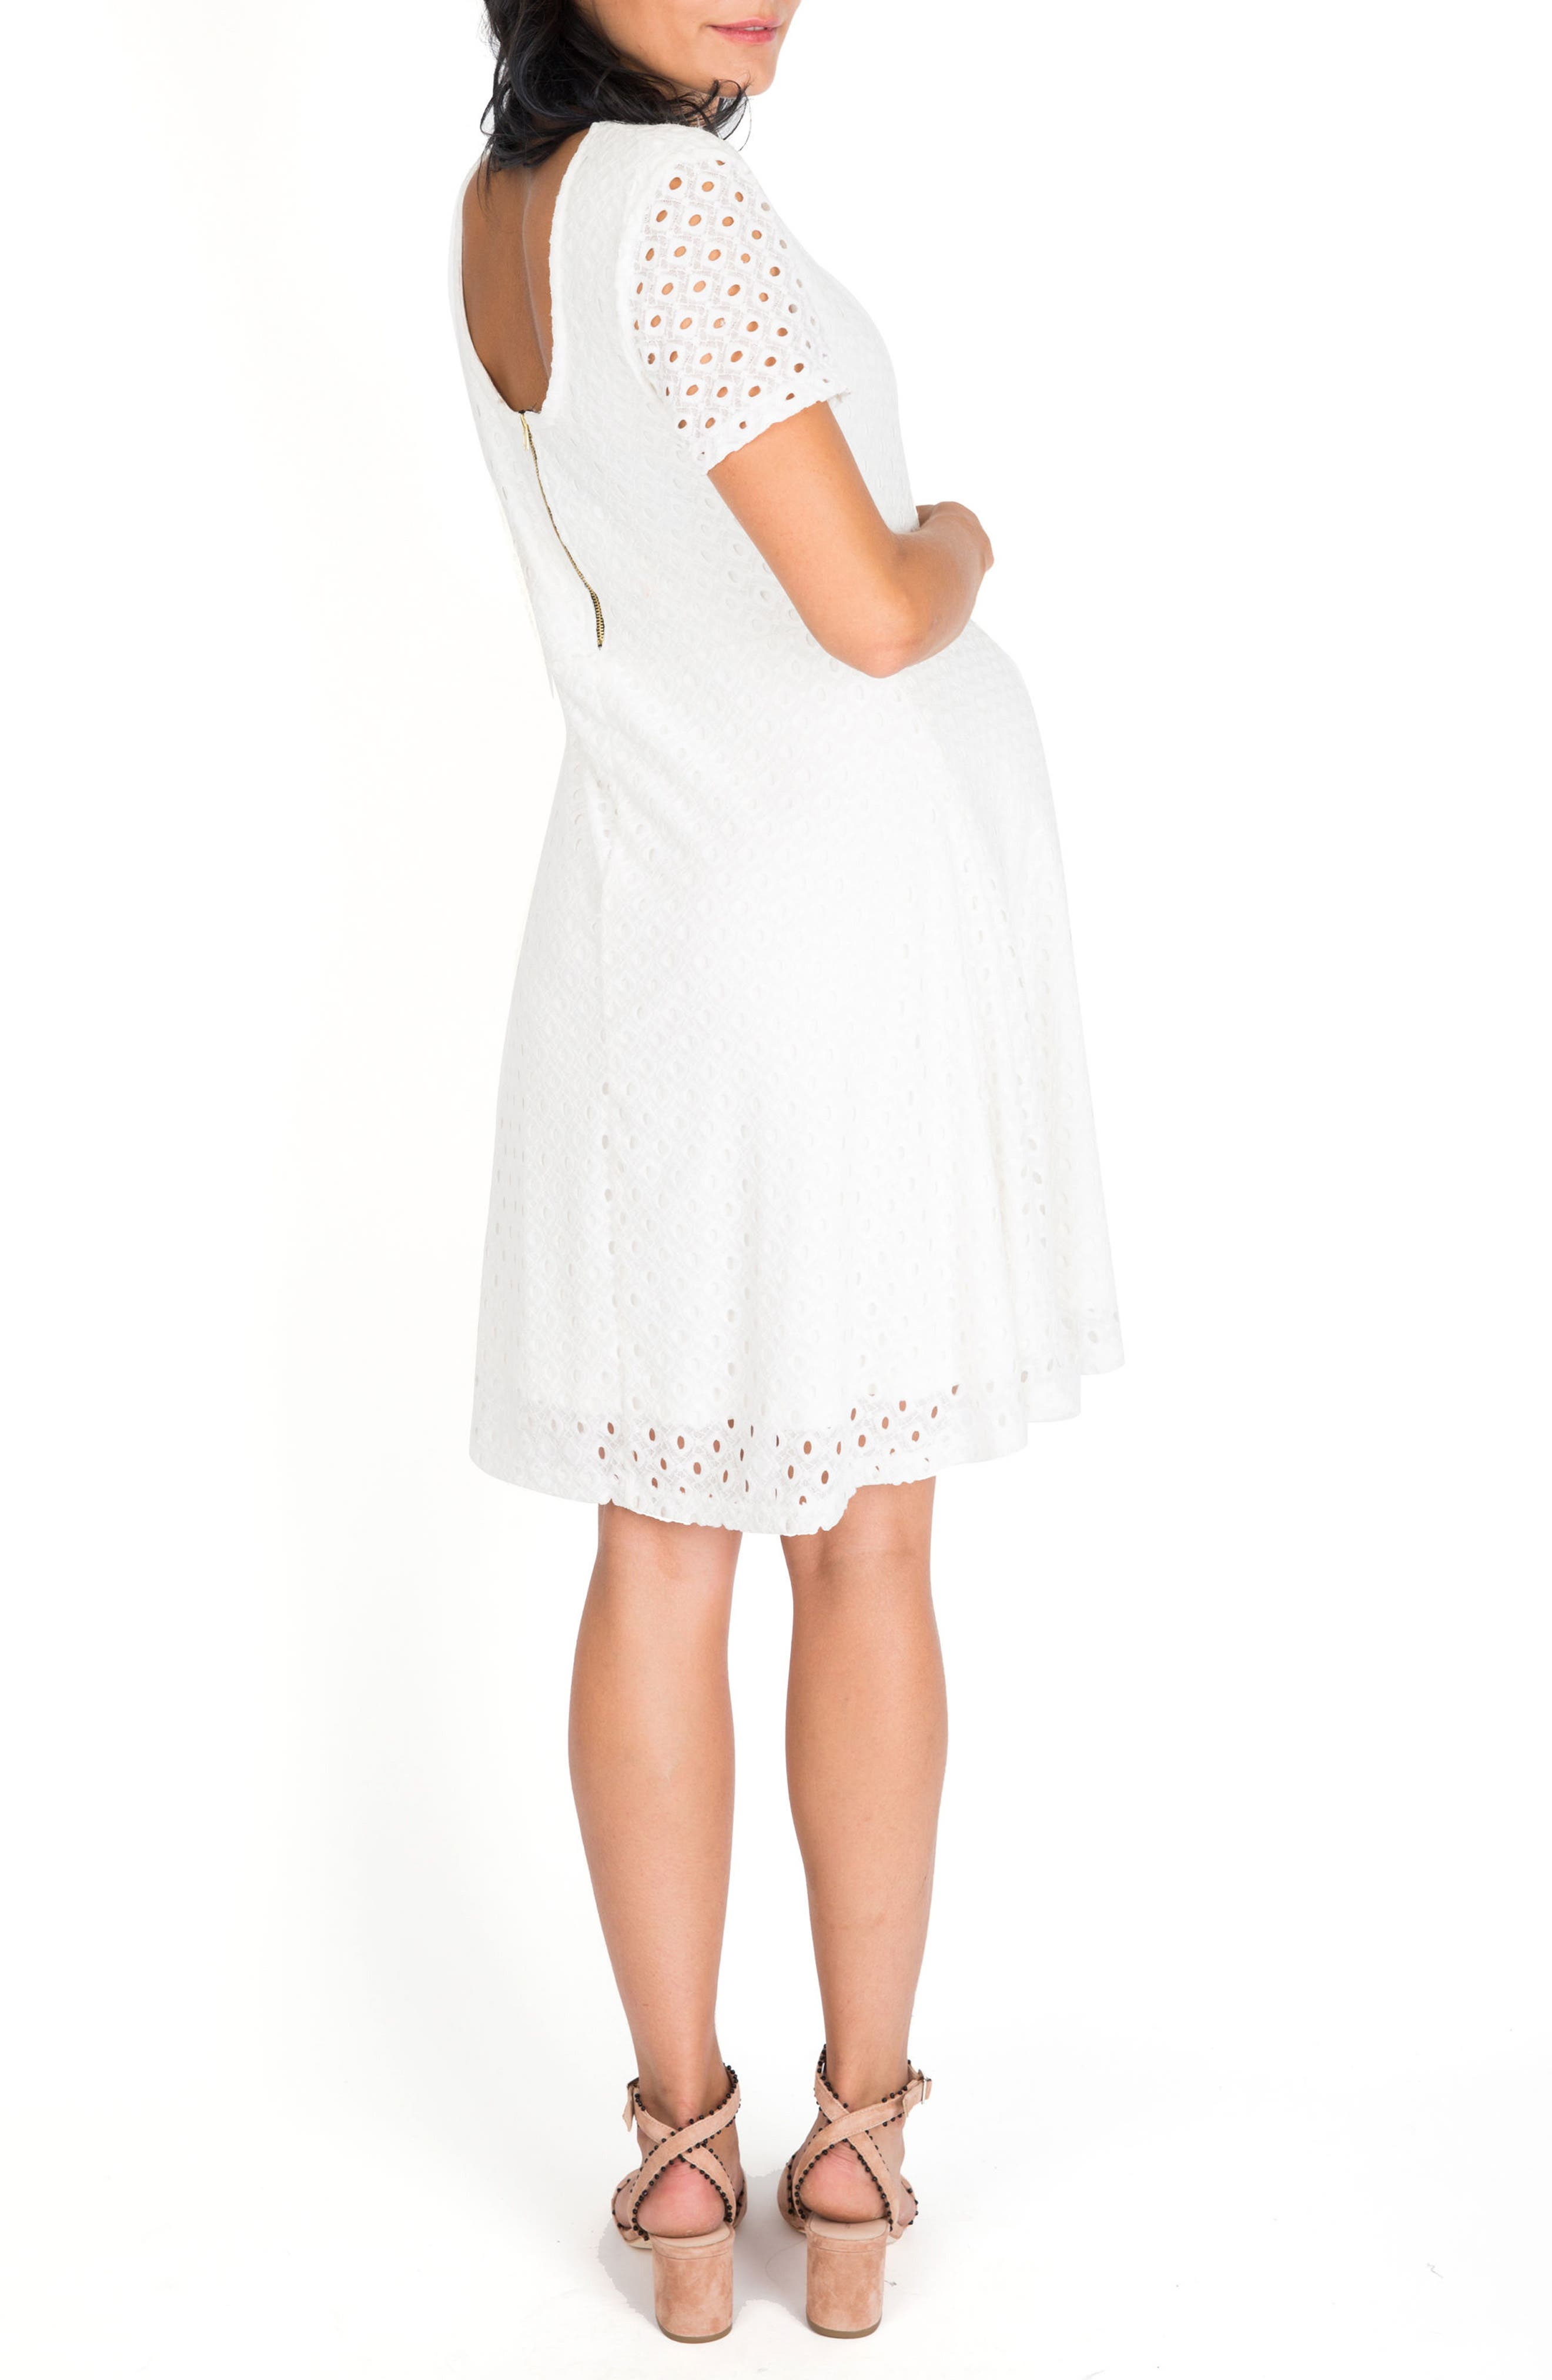 Georgia Maternity Eyelet Dress,                             Alternate thumbnail 2, color,                             White Lace